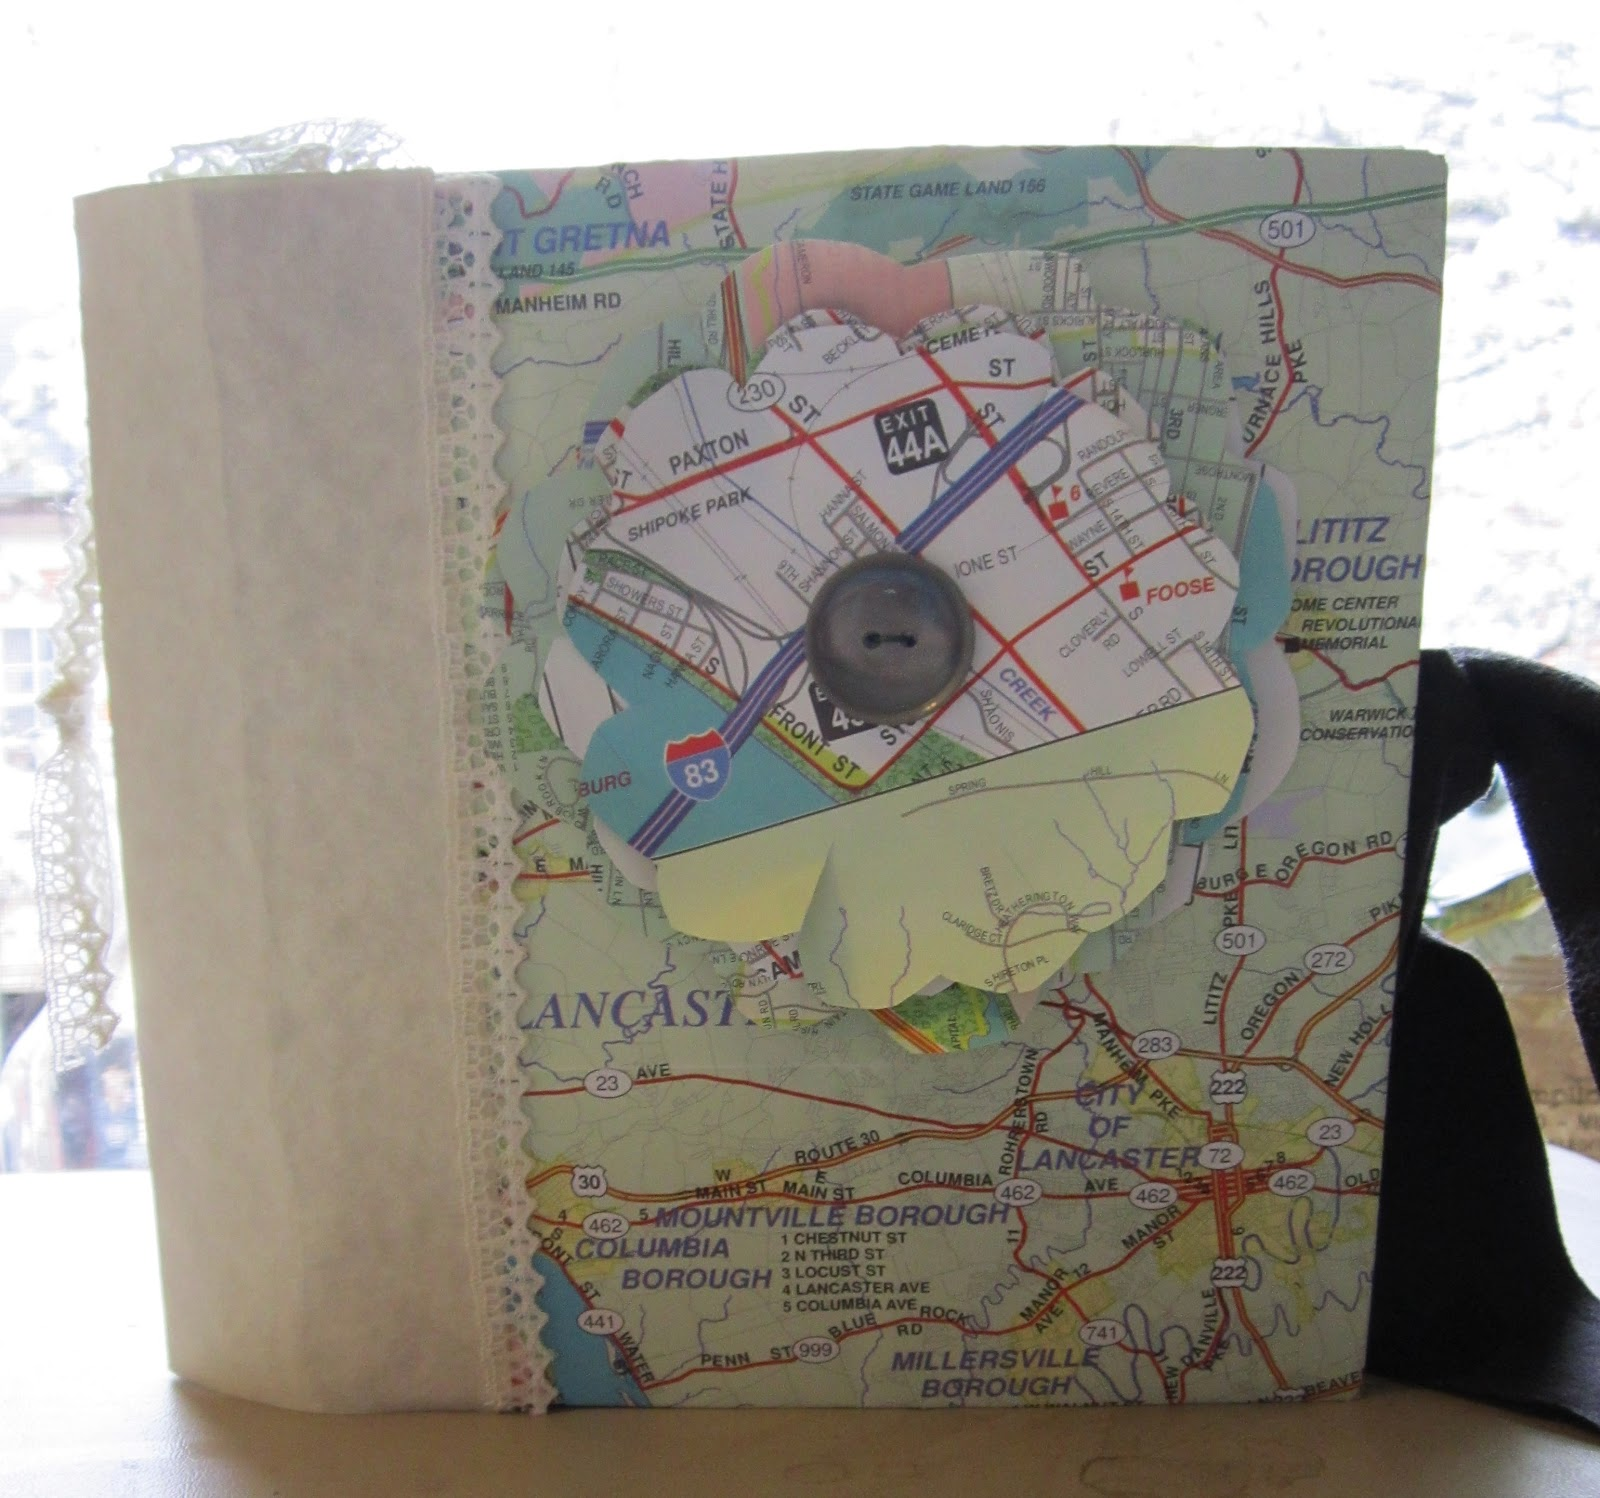 Paper bag scrapbook - This Paper Bag Scrapbook Was Made Using Old Maps For The Decoration To Make A Fun Travel Journal Scrapbook